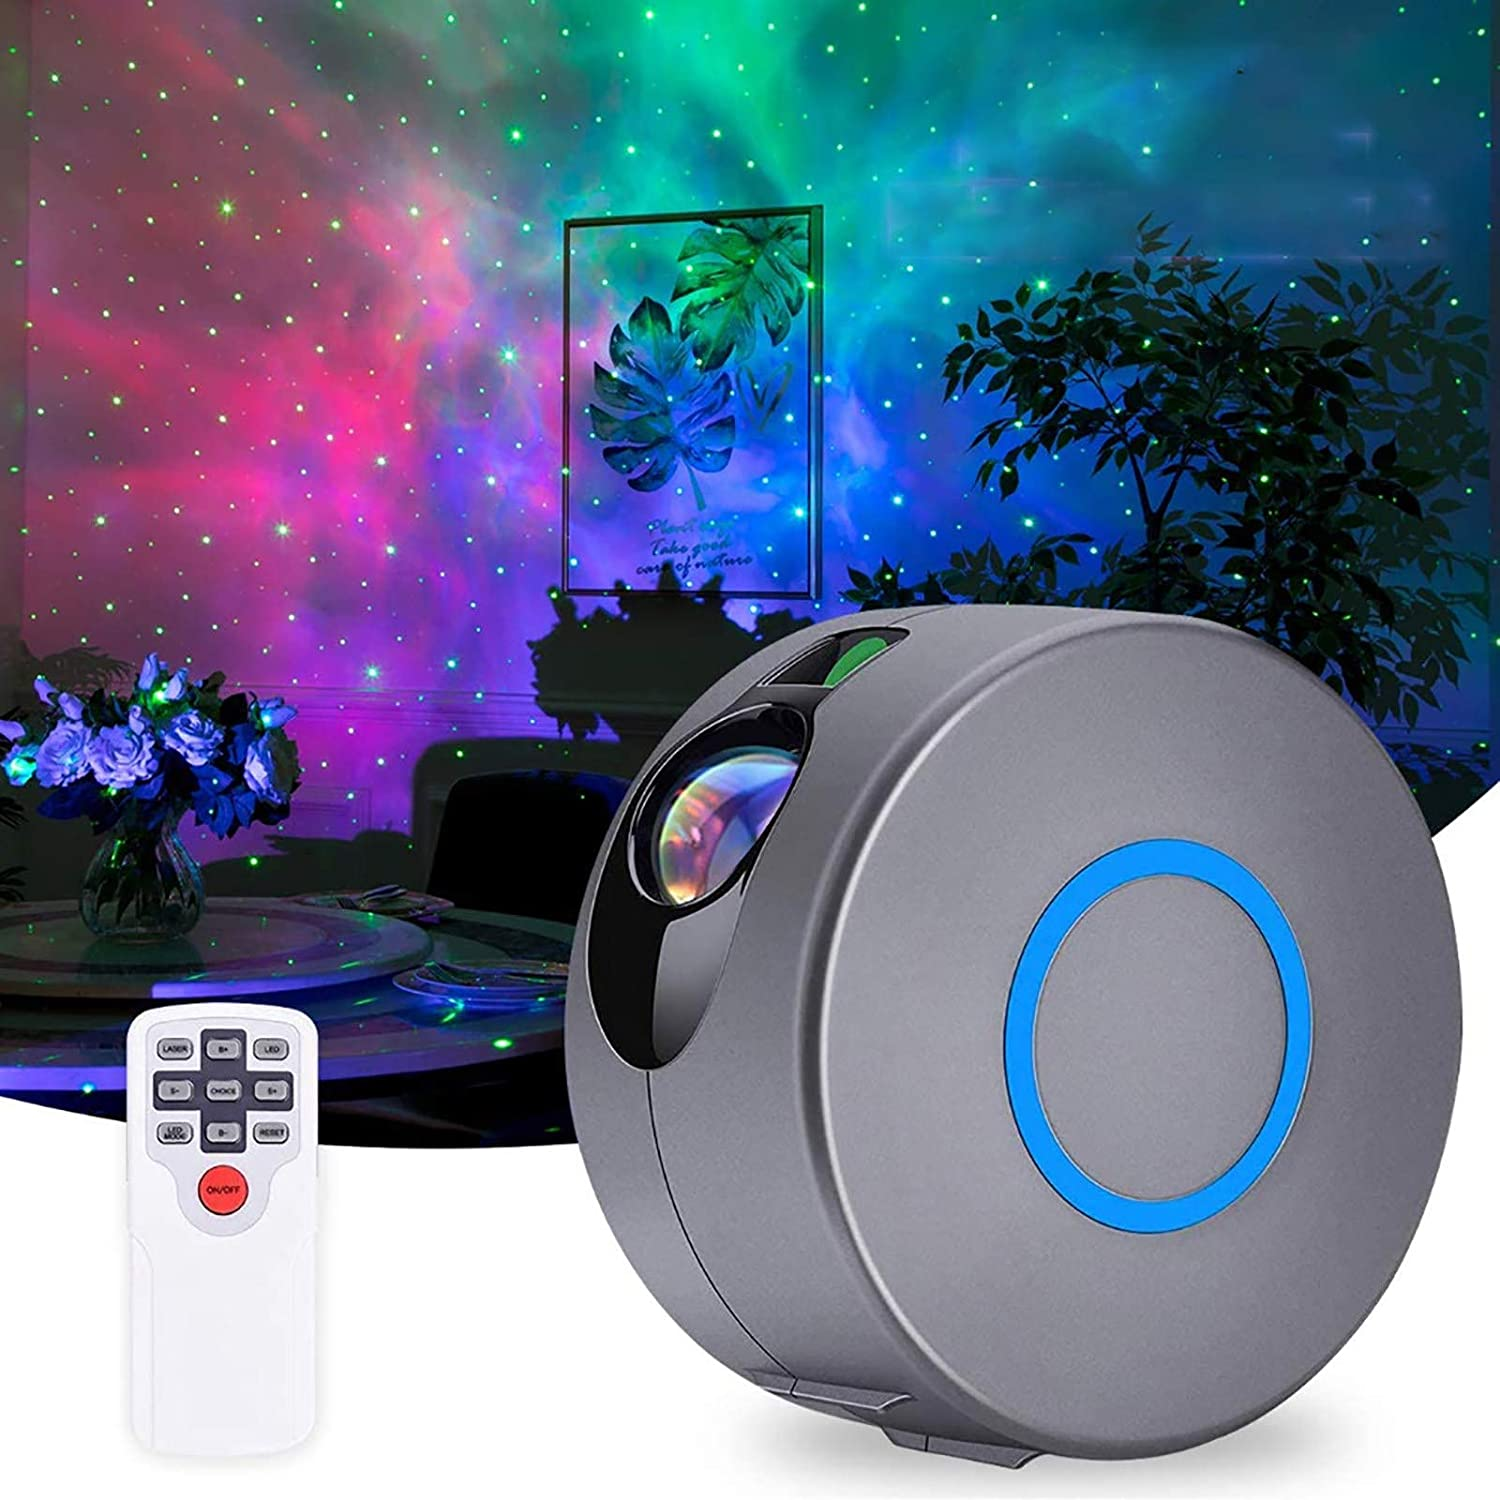 Zdcdy Starry Sale Special Price Night Light Projector 2 LED Projec Max 61% OFF in Star 1